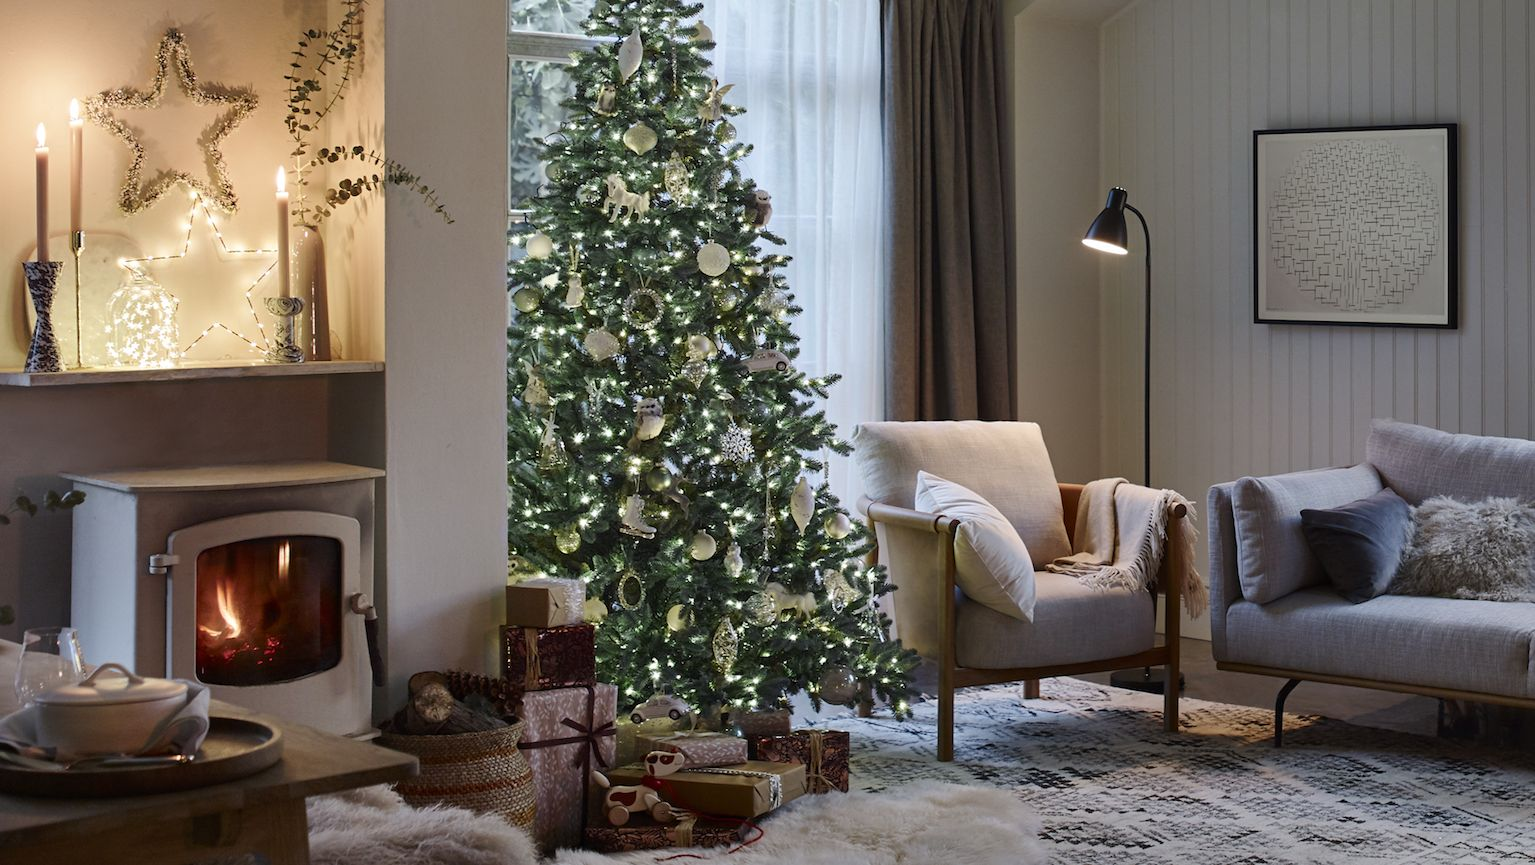 9 ways the UK's Christmas decorating trends have changed in the past decade